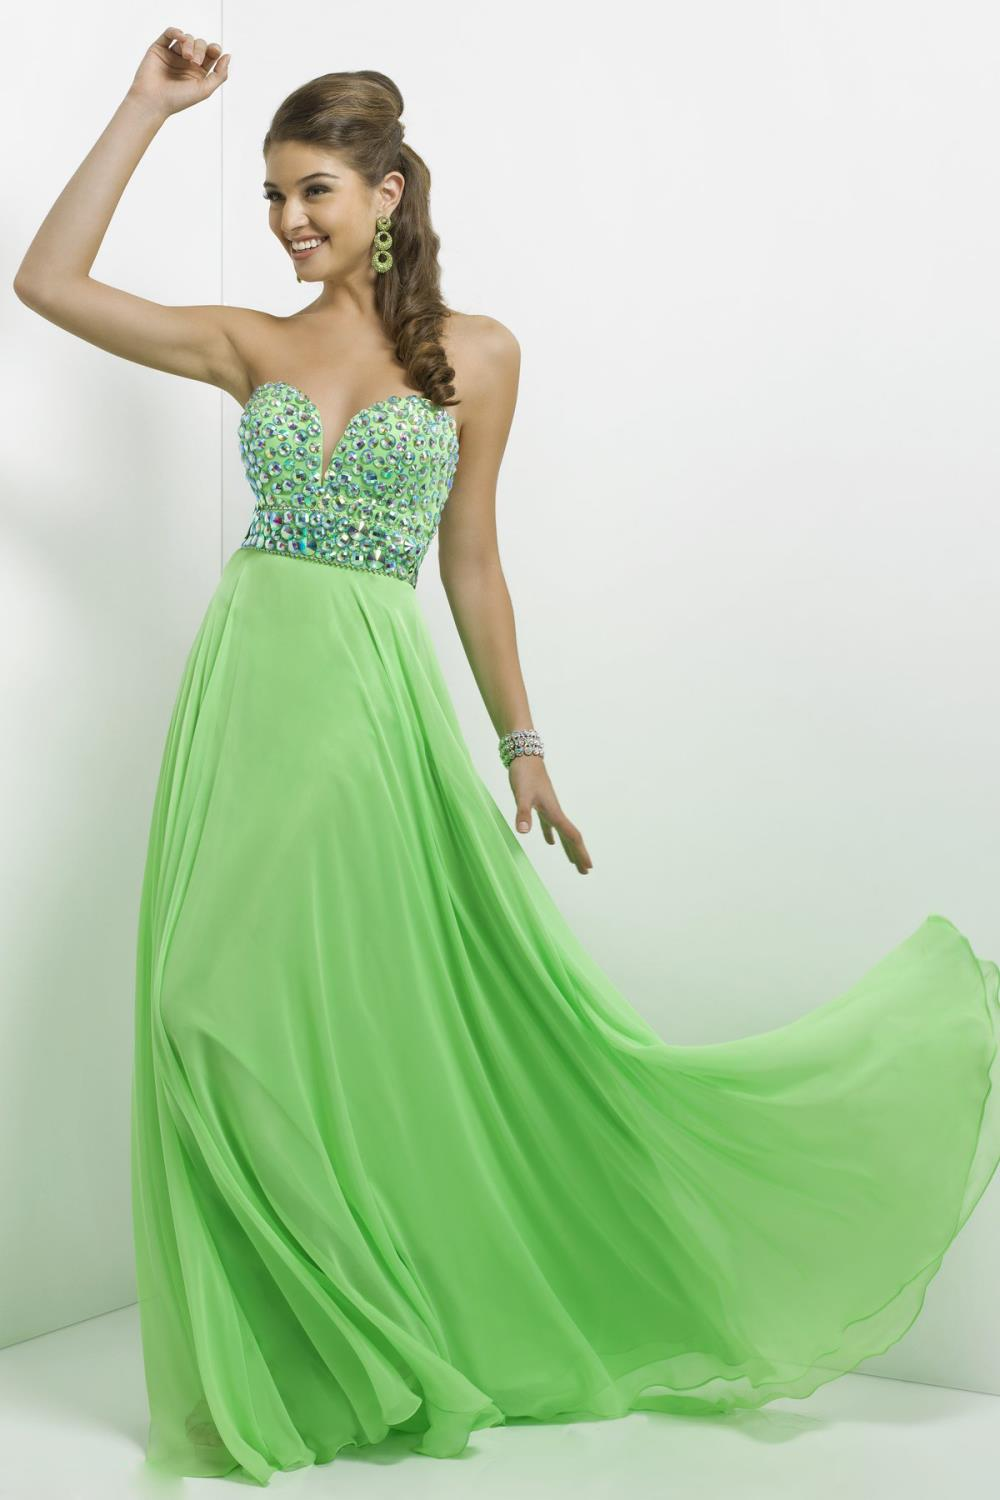 popular lime green prom dressesbuy cheap lime green prom